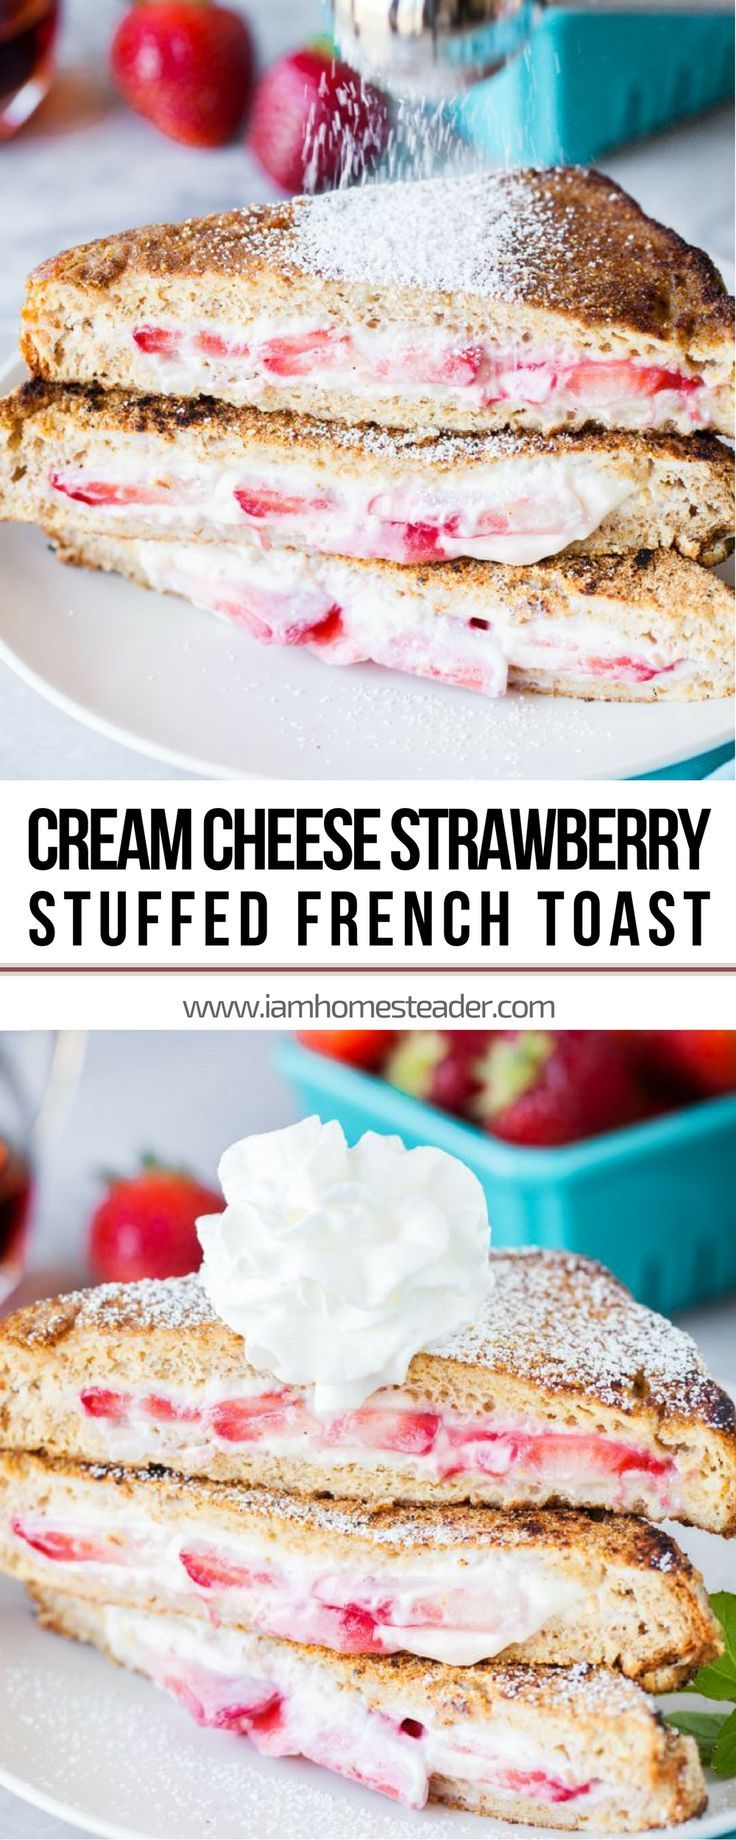 CREAM CHEESE STRAWBERRY STUFFED FRENCH TOAST | covered with a cinnamon and sugar coating and filled with cream cheese and juicy strawberries.  Perfect to be served with your easy dinner recipes for your family! Add this to your collection of Easy Dessert Recipes | Quick and Easy Dinner Recipe for the Family | Easy Homemade Food Recipes for Dinner Check us out @iamhomesteader for more healthy homemade cooking and easy homesteading recipes you can do at home.  #Homestead #homesteading